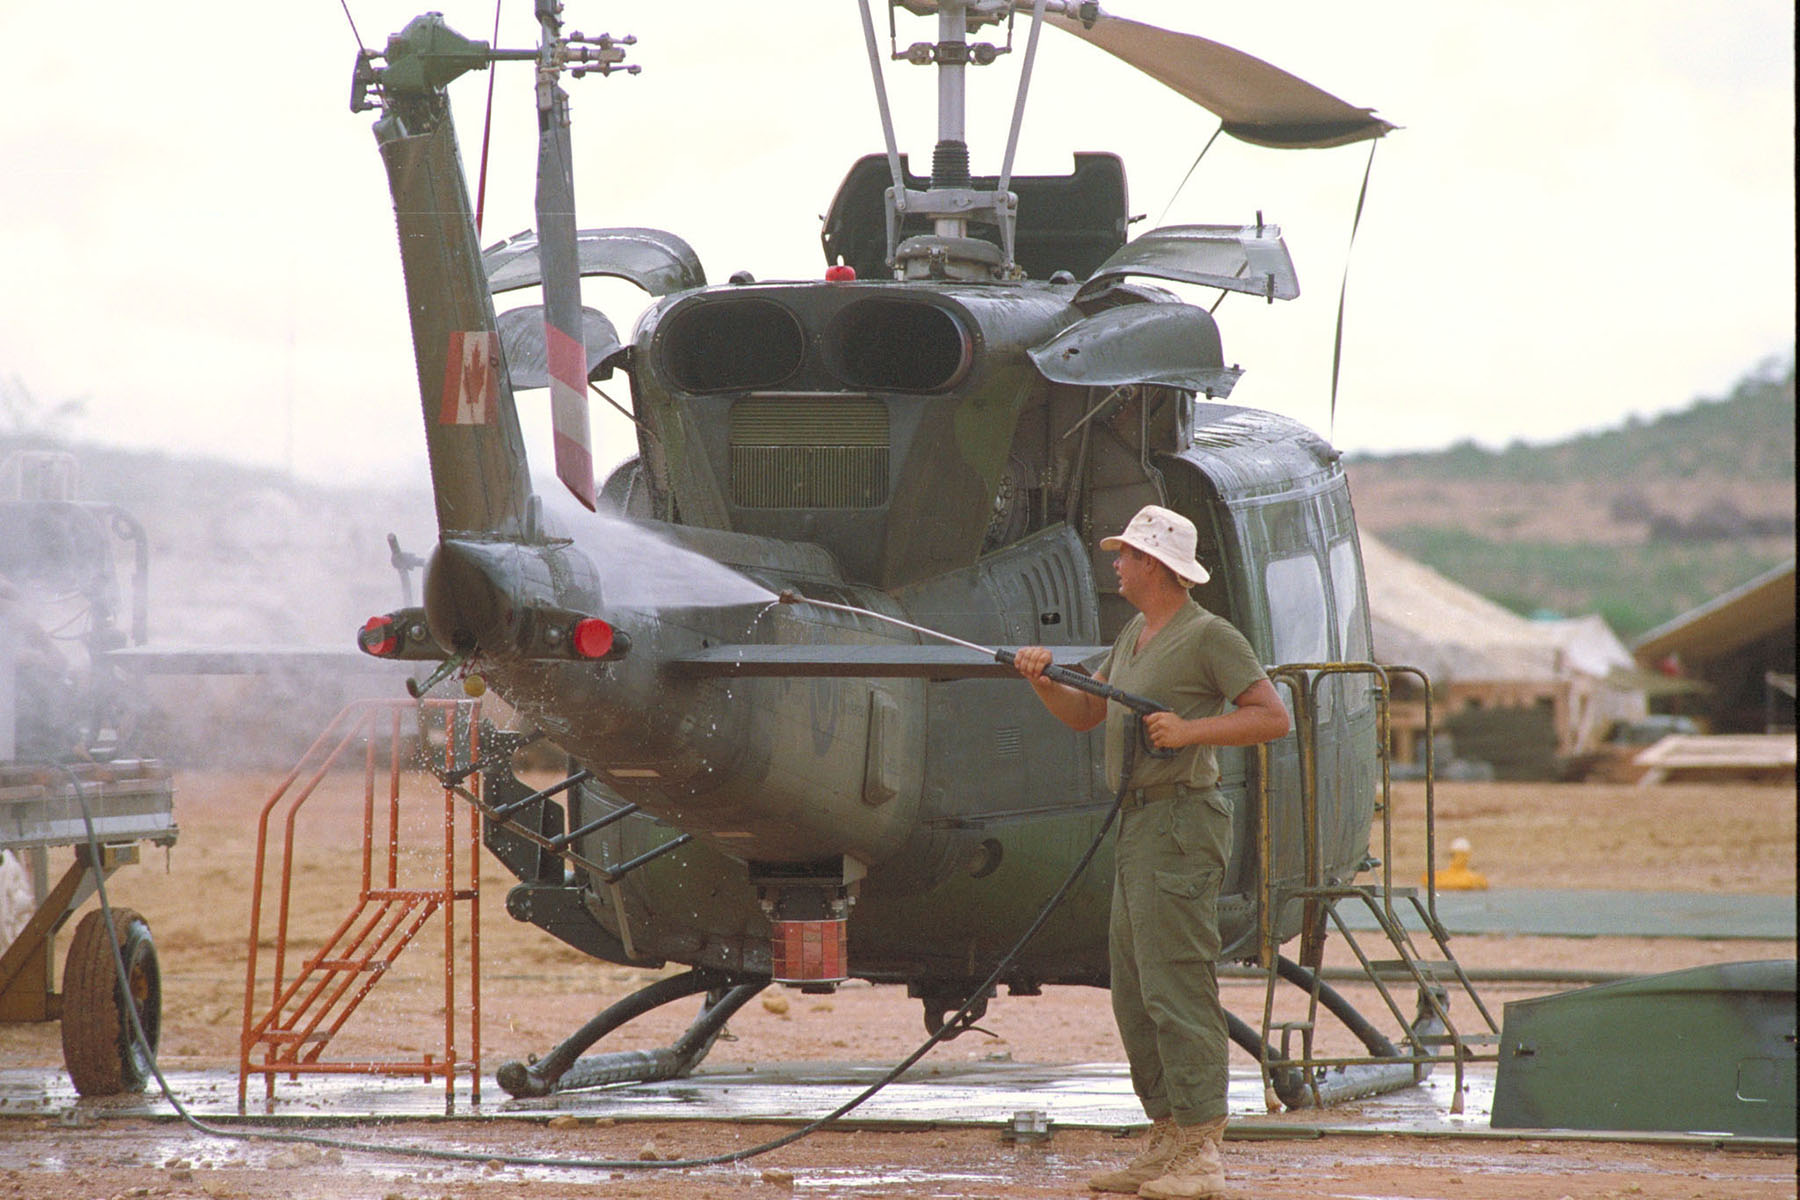 On May 9, 1993, Corporal Steve Popp of 427 Squadron washes a CH-135 Twin Huey helicopter. PHOTO: Sergeant Ed Dixon, ISC93-10482